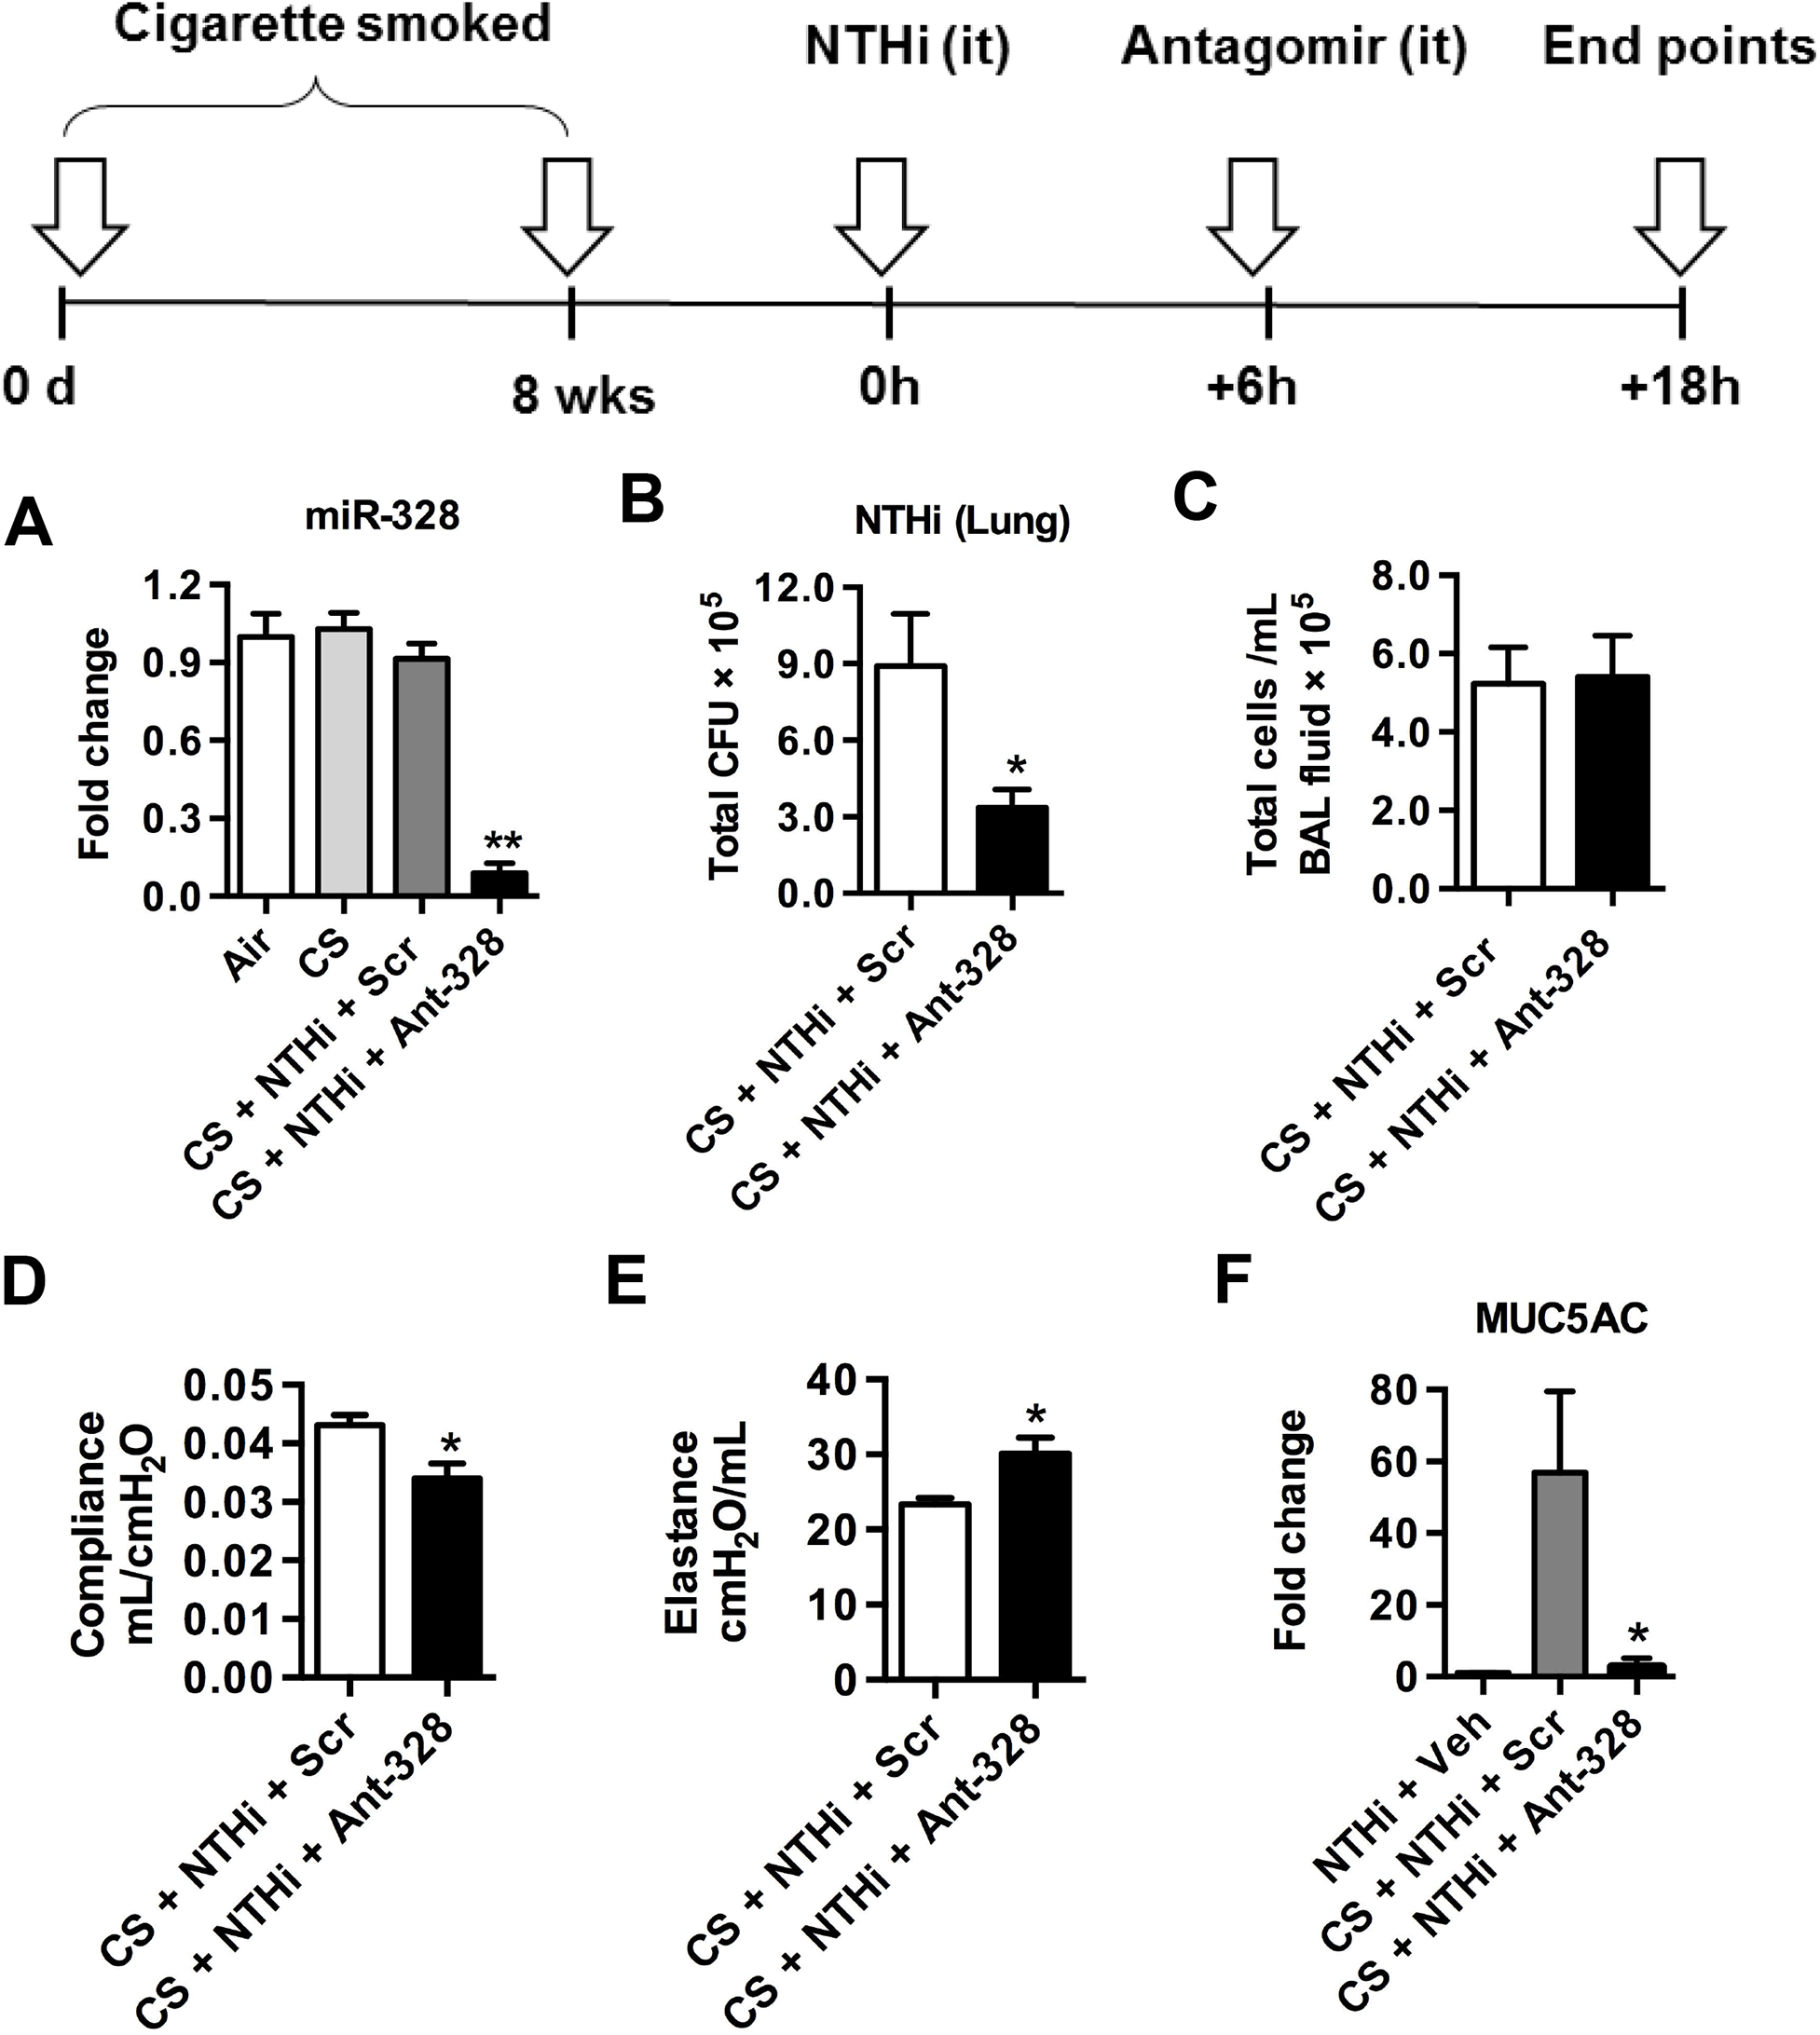 Inhibiting miR-328 enhances bacterial clearance in cigarette smoke-exposed mice.